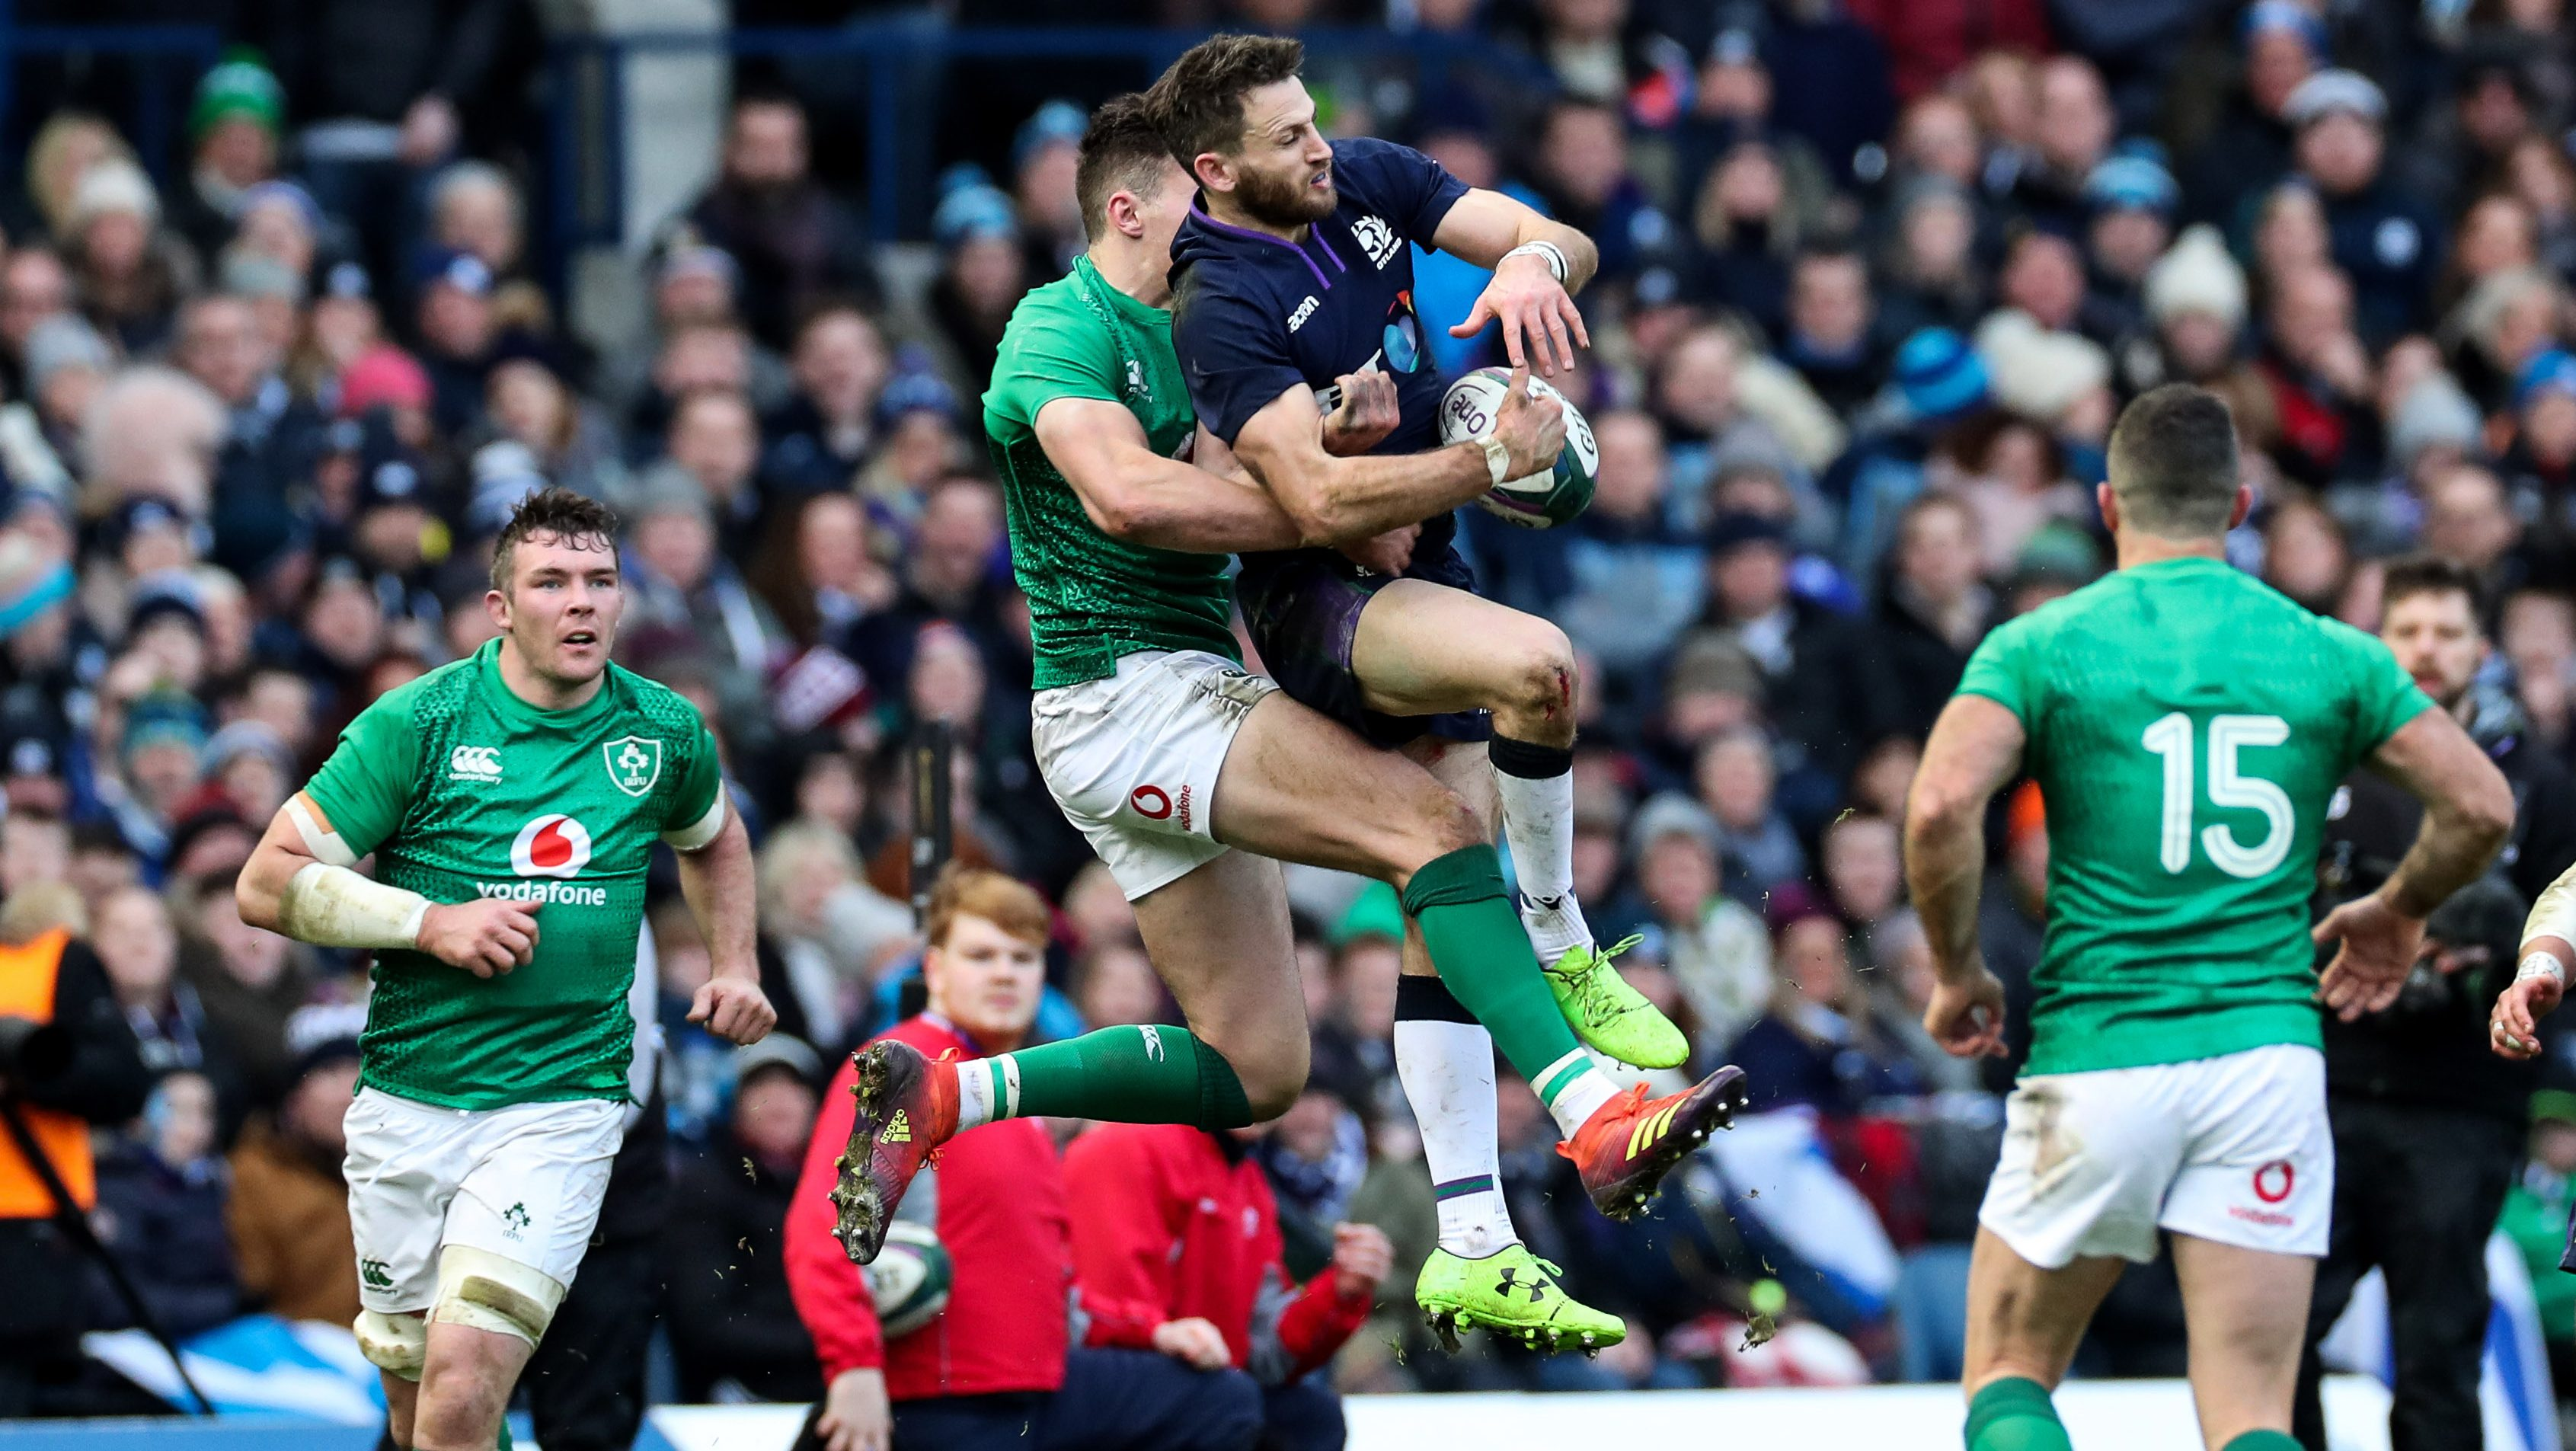 Glasgow Warriors, Ulster, Leinster and Munster compete for final places